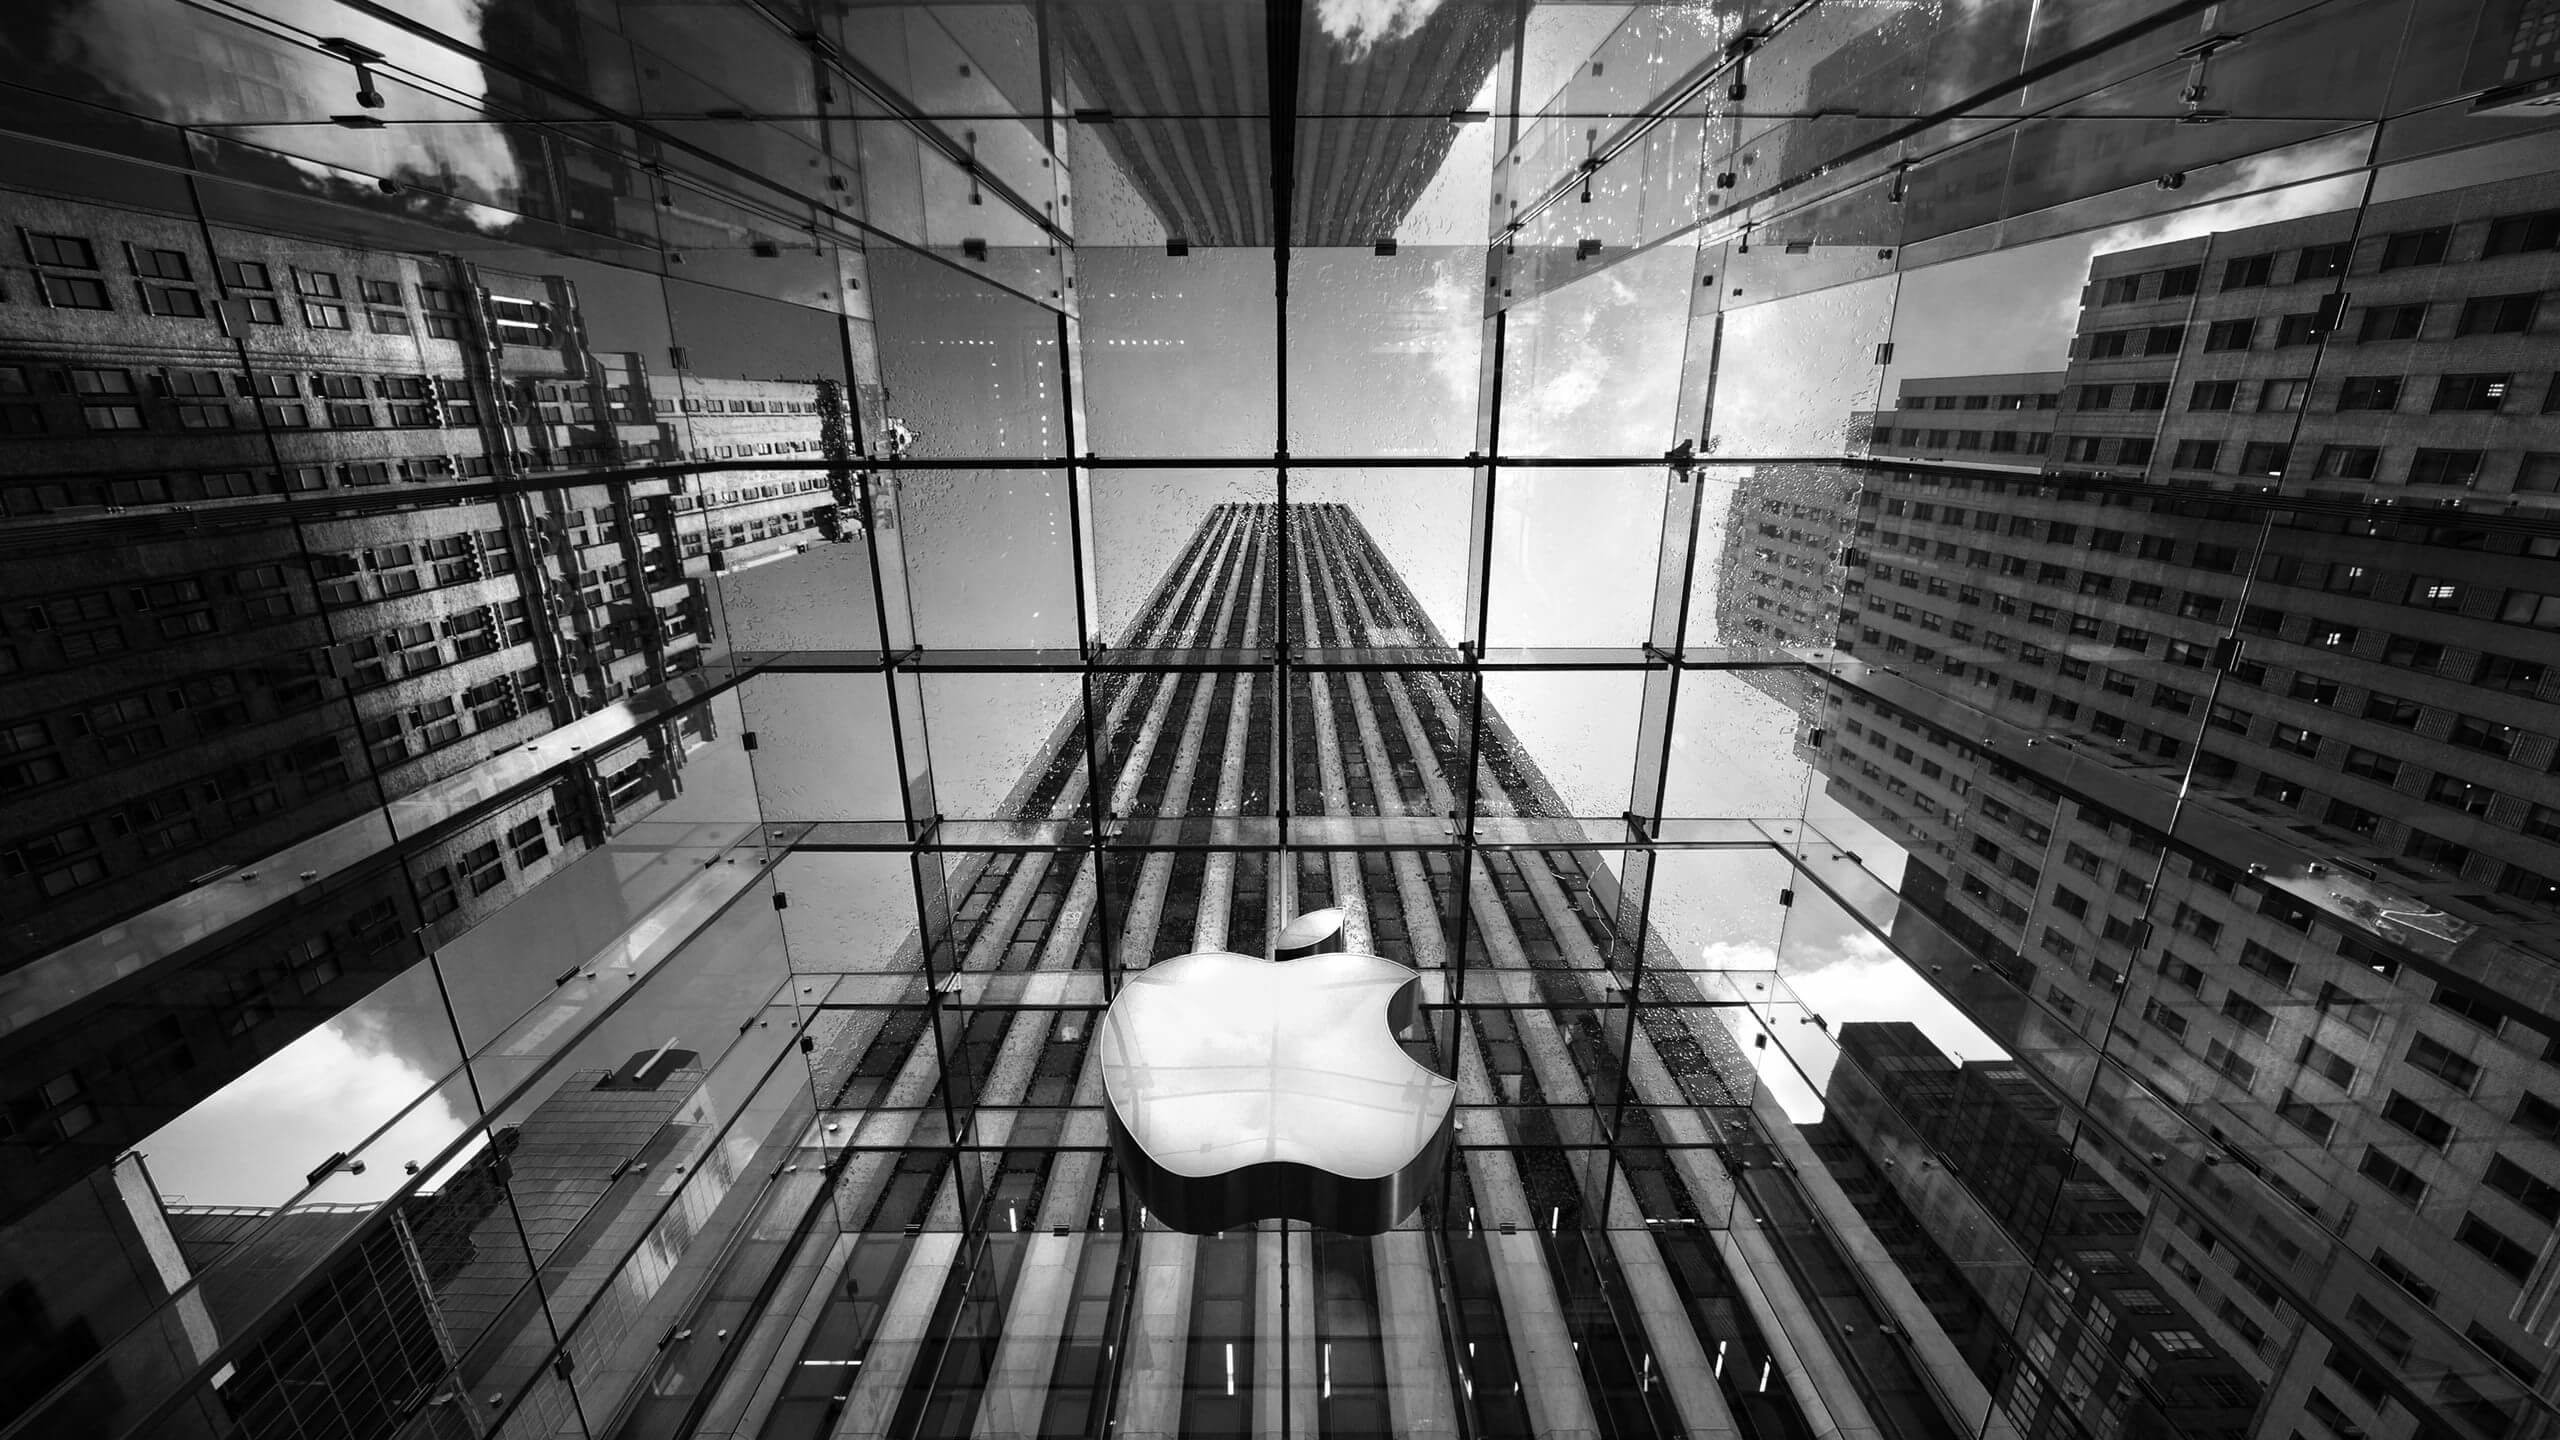 Apple Store, Fifth Avenue, New York City Wallpaper for Desktop 2560x1440